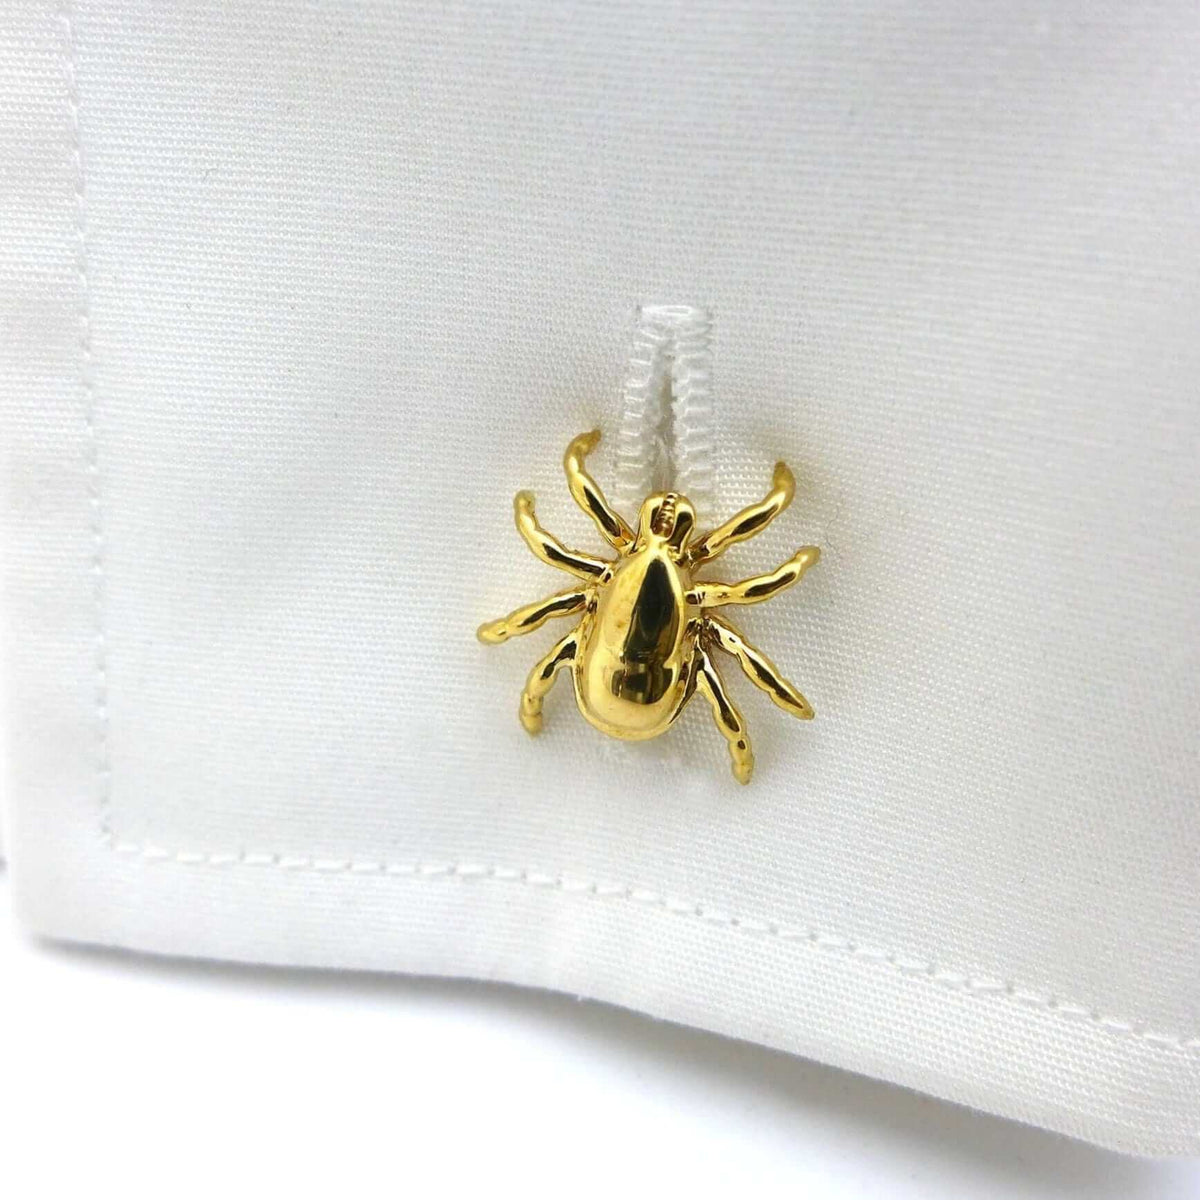 Tick cufflinks 3D printed brass